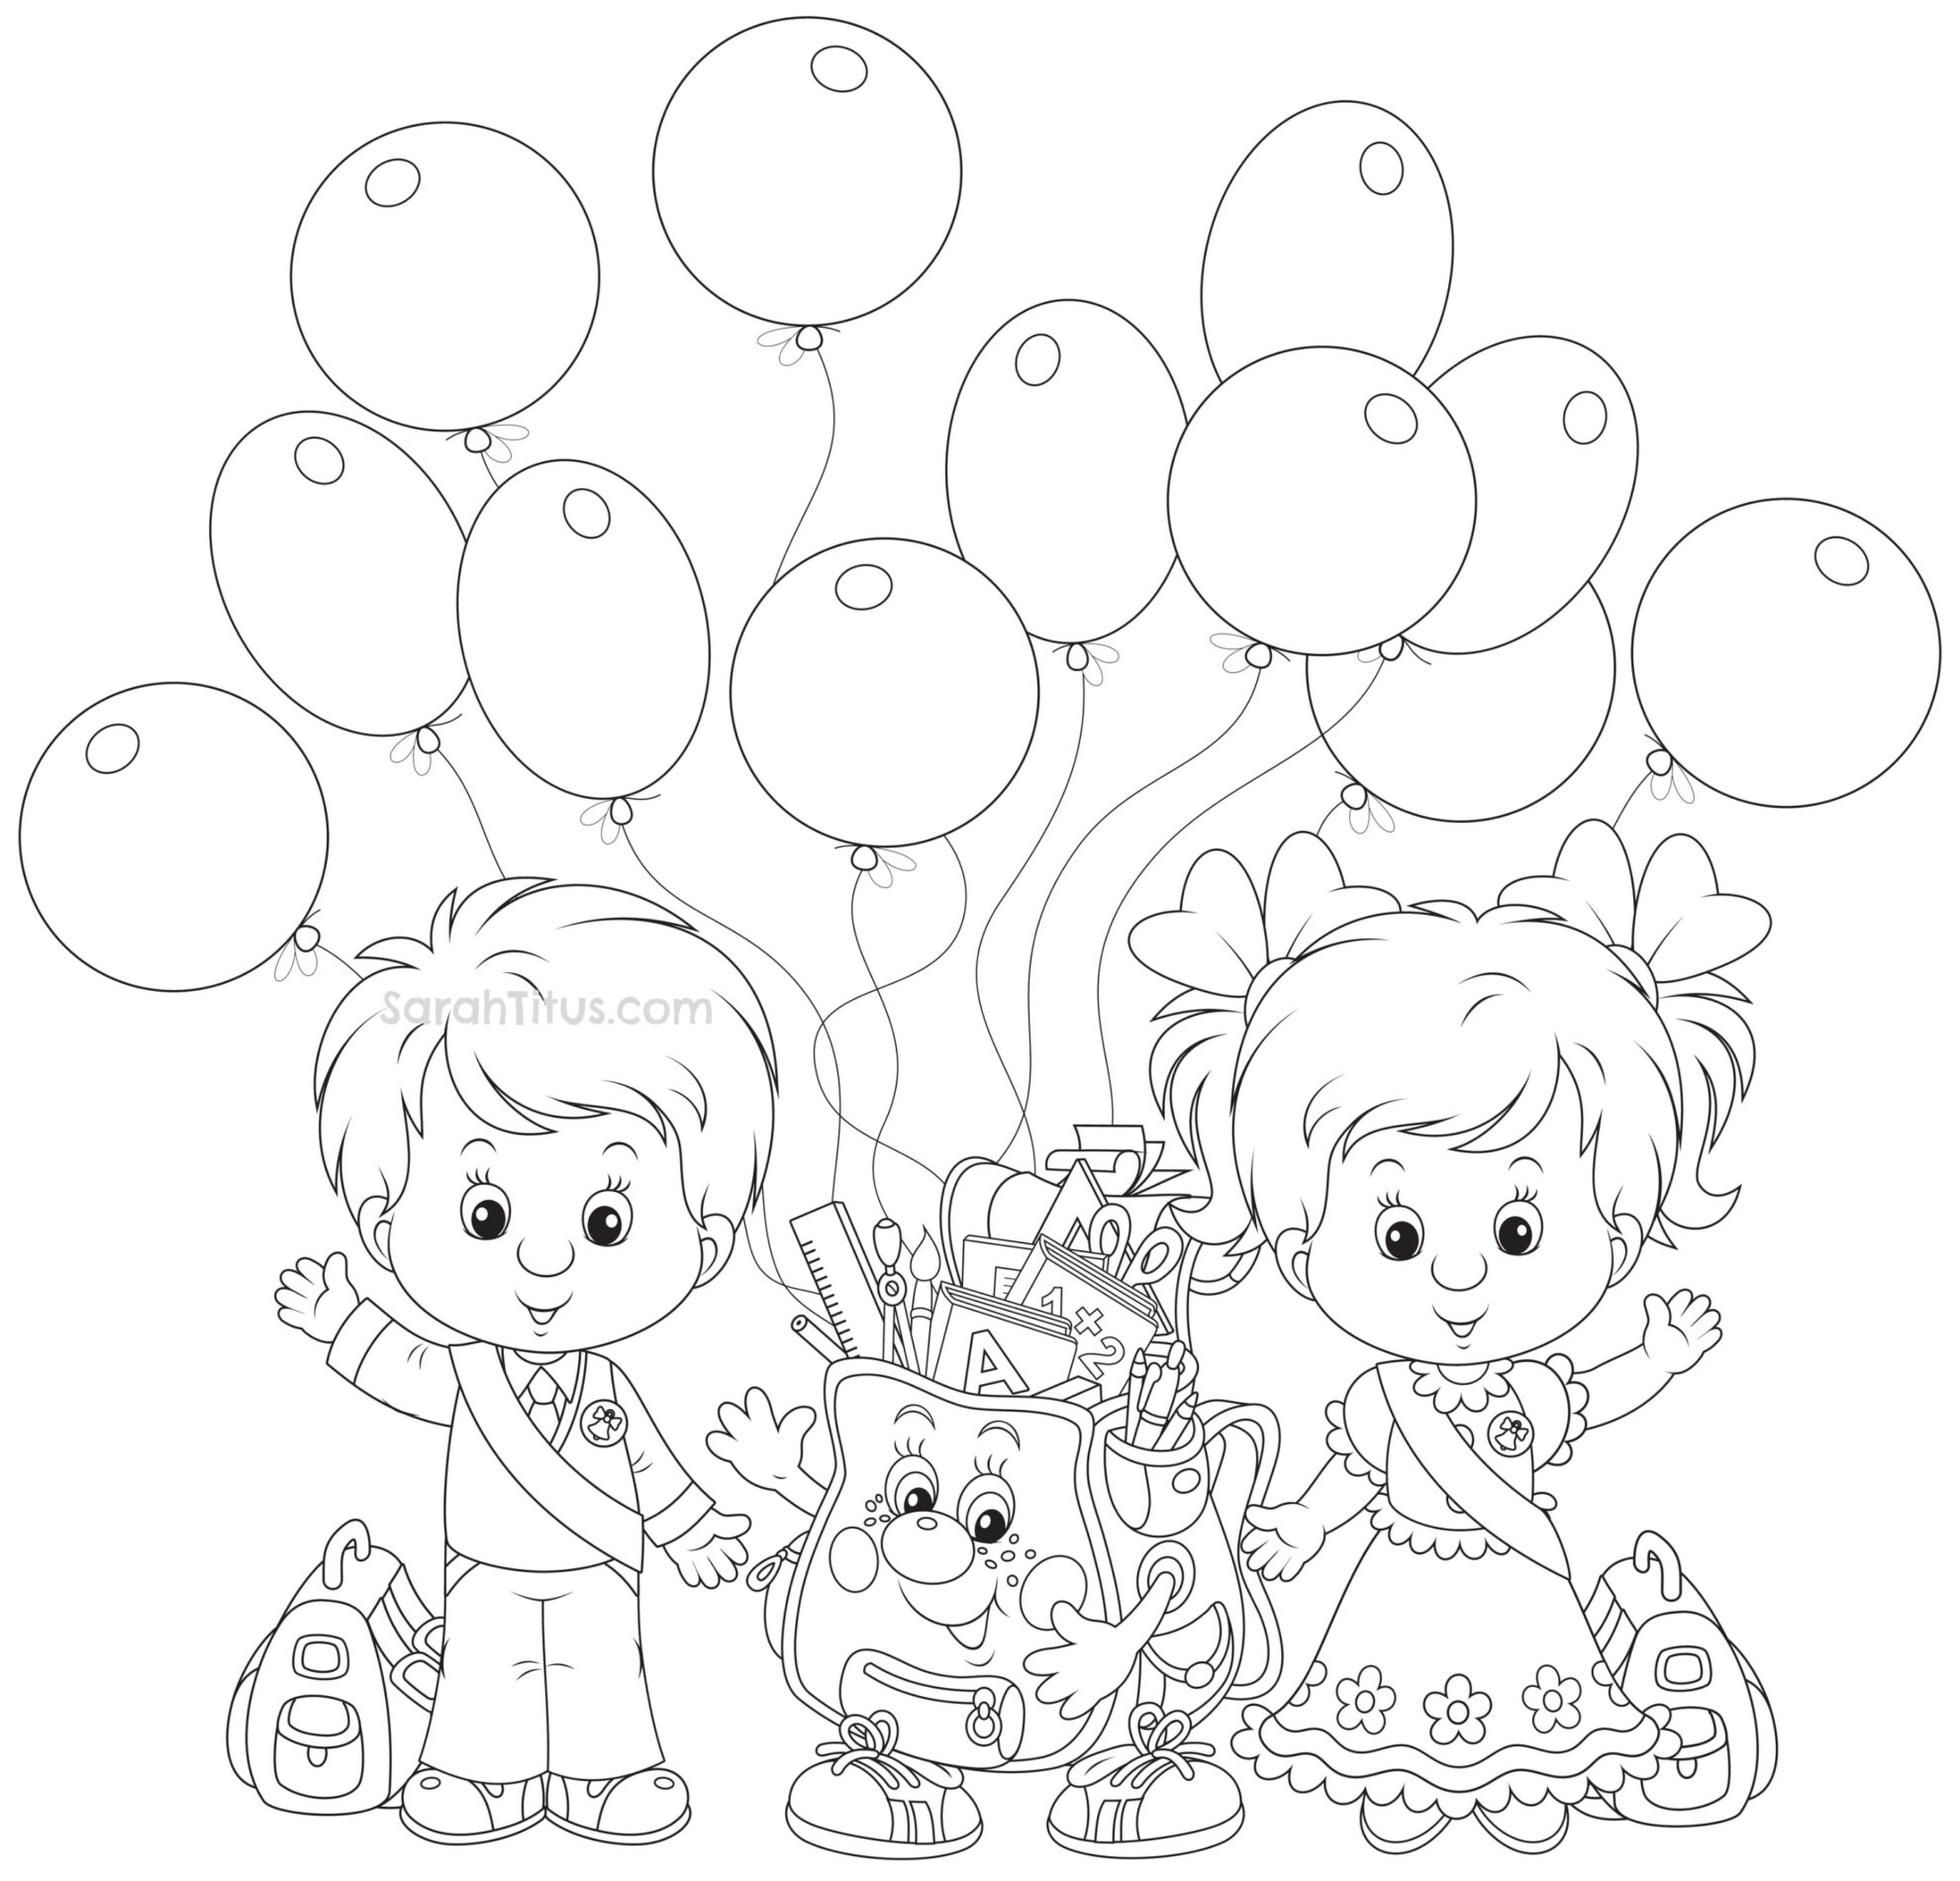 kindergarten coloring pages school - photo#24